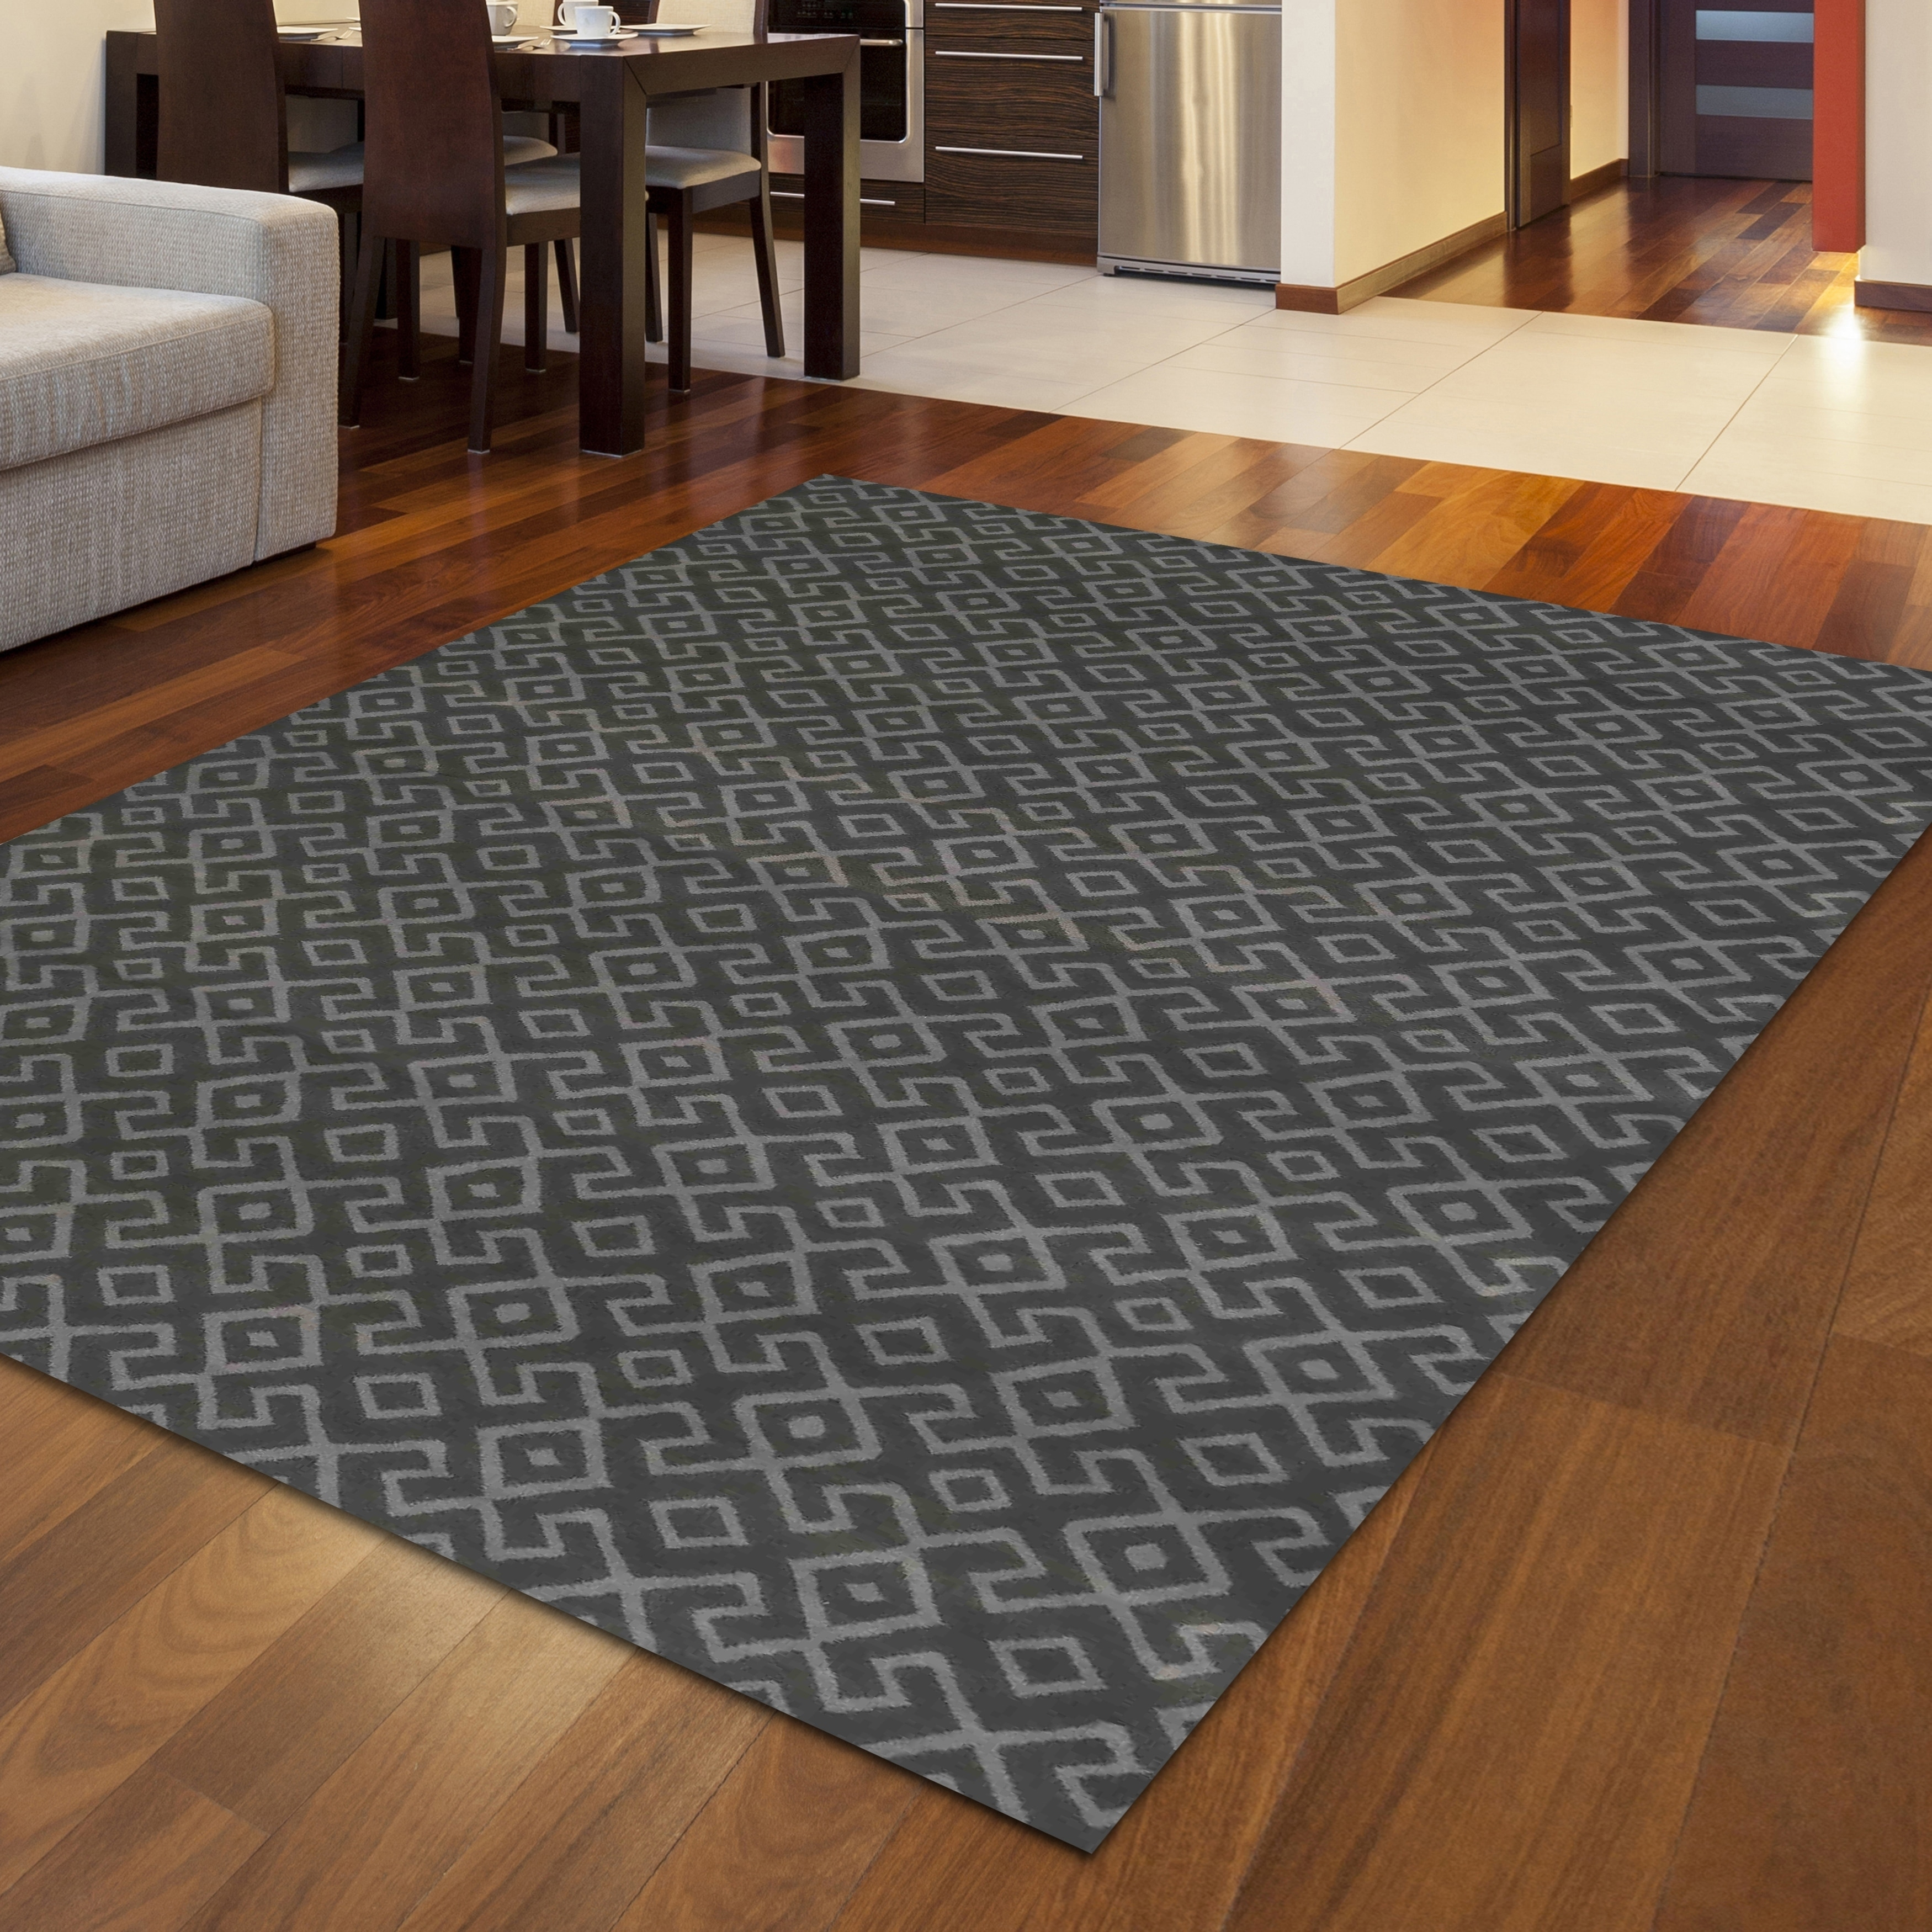 Bronte Disc Area Rug - 710 x 106 (710 x 106 - Grey)